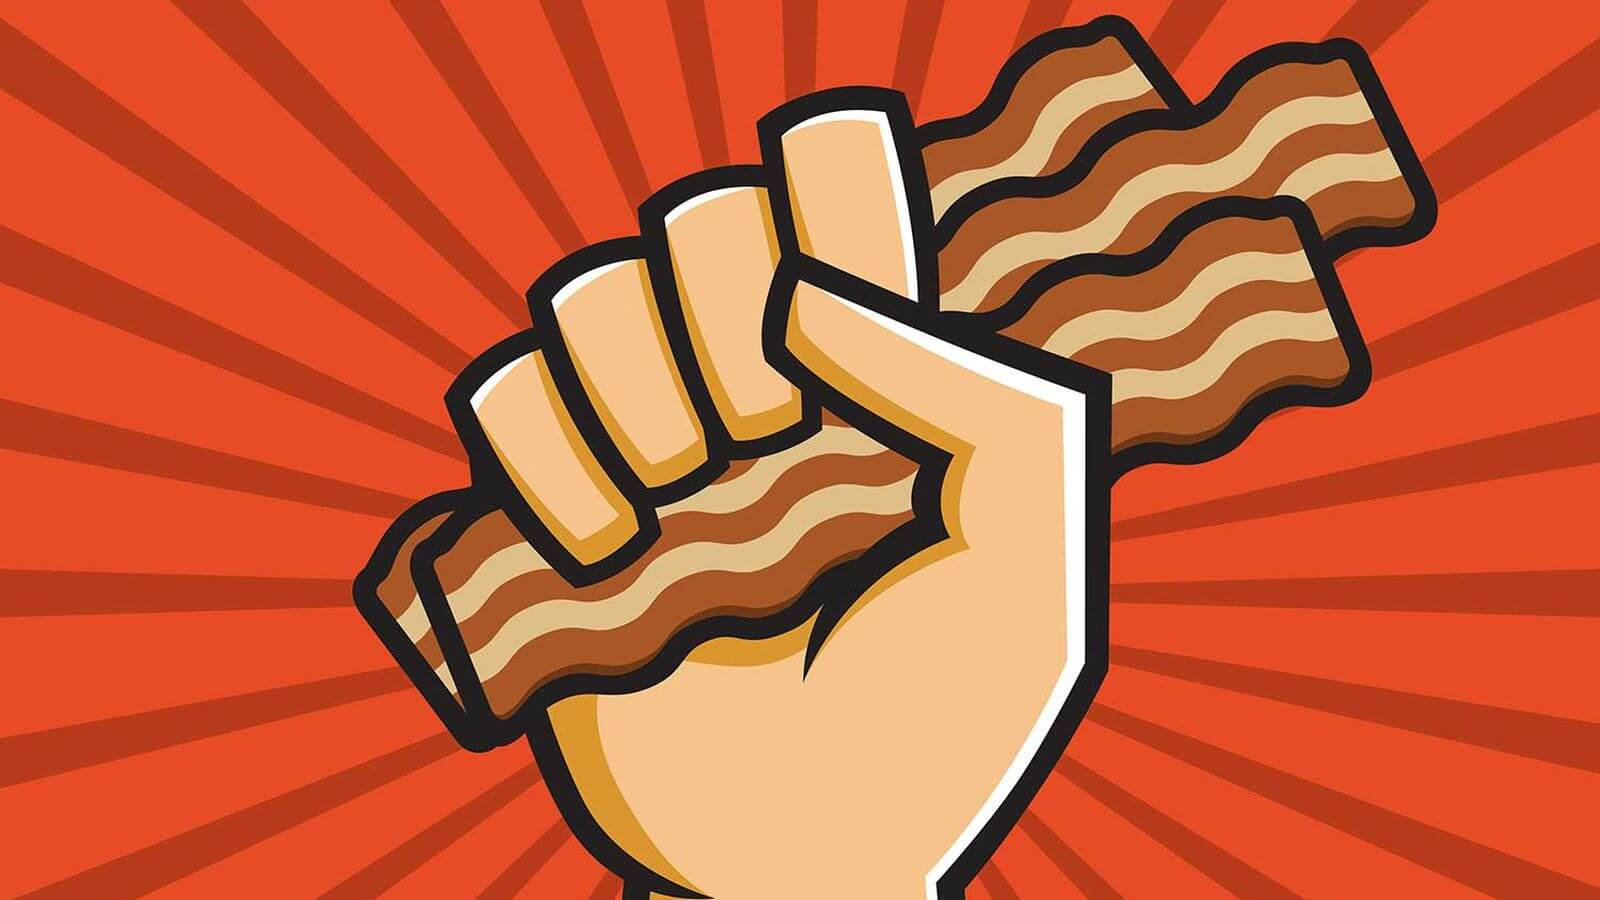 bacon emoji 0 0